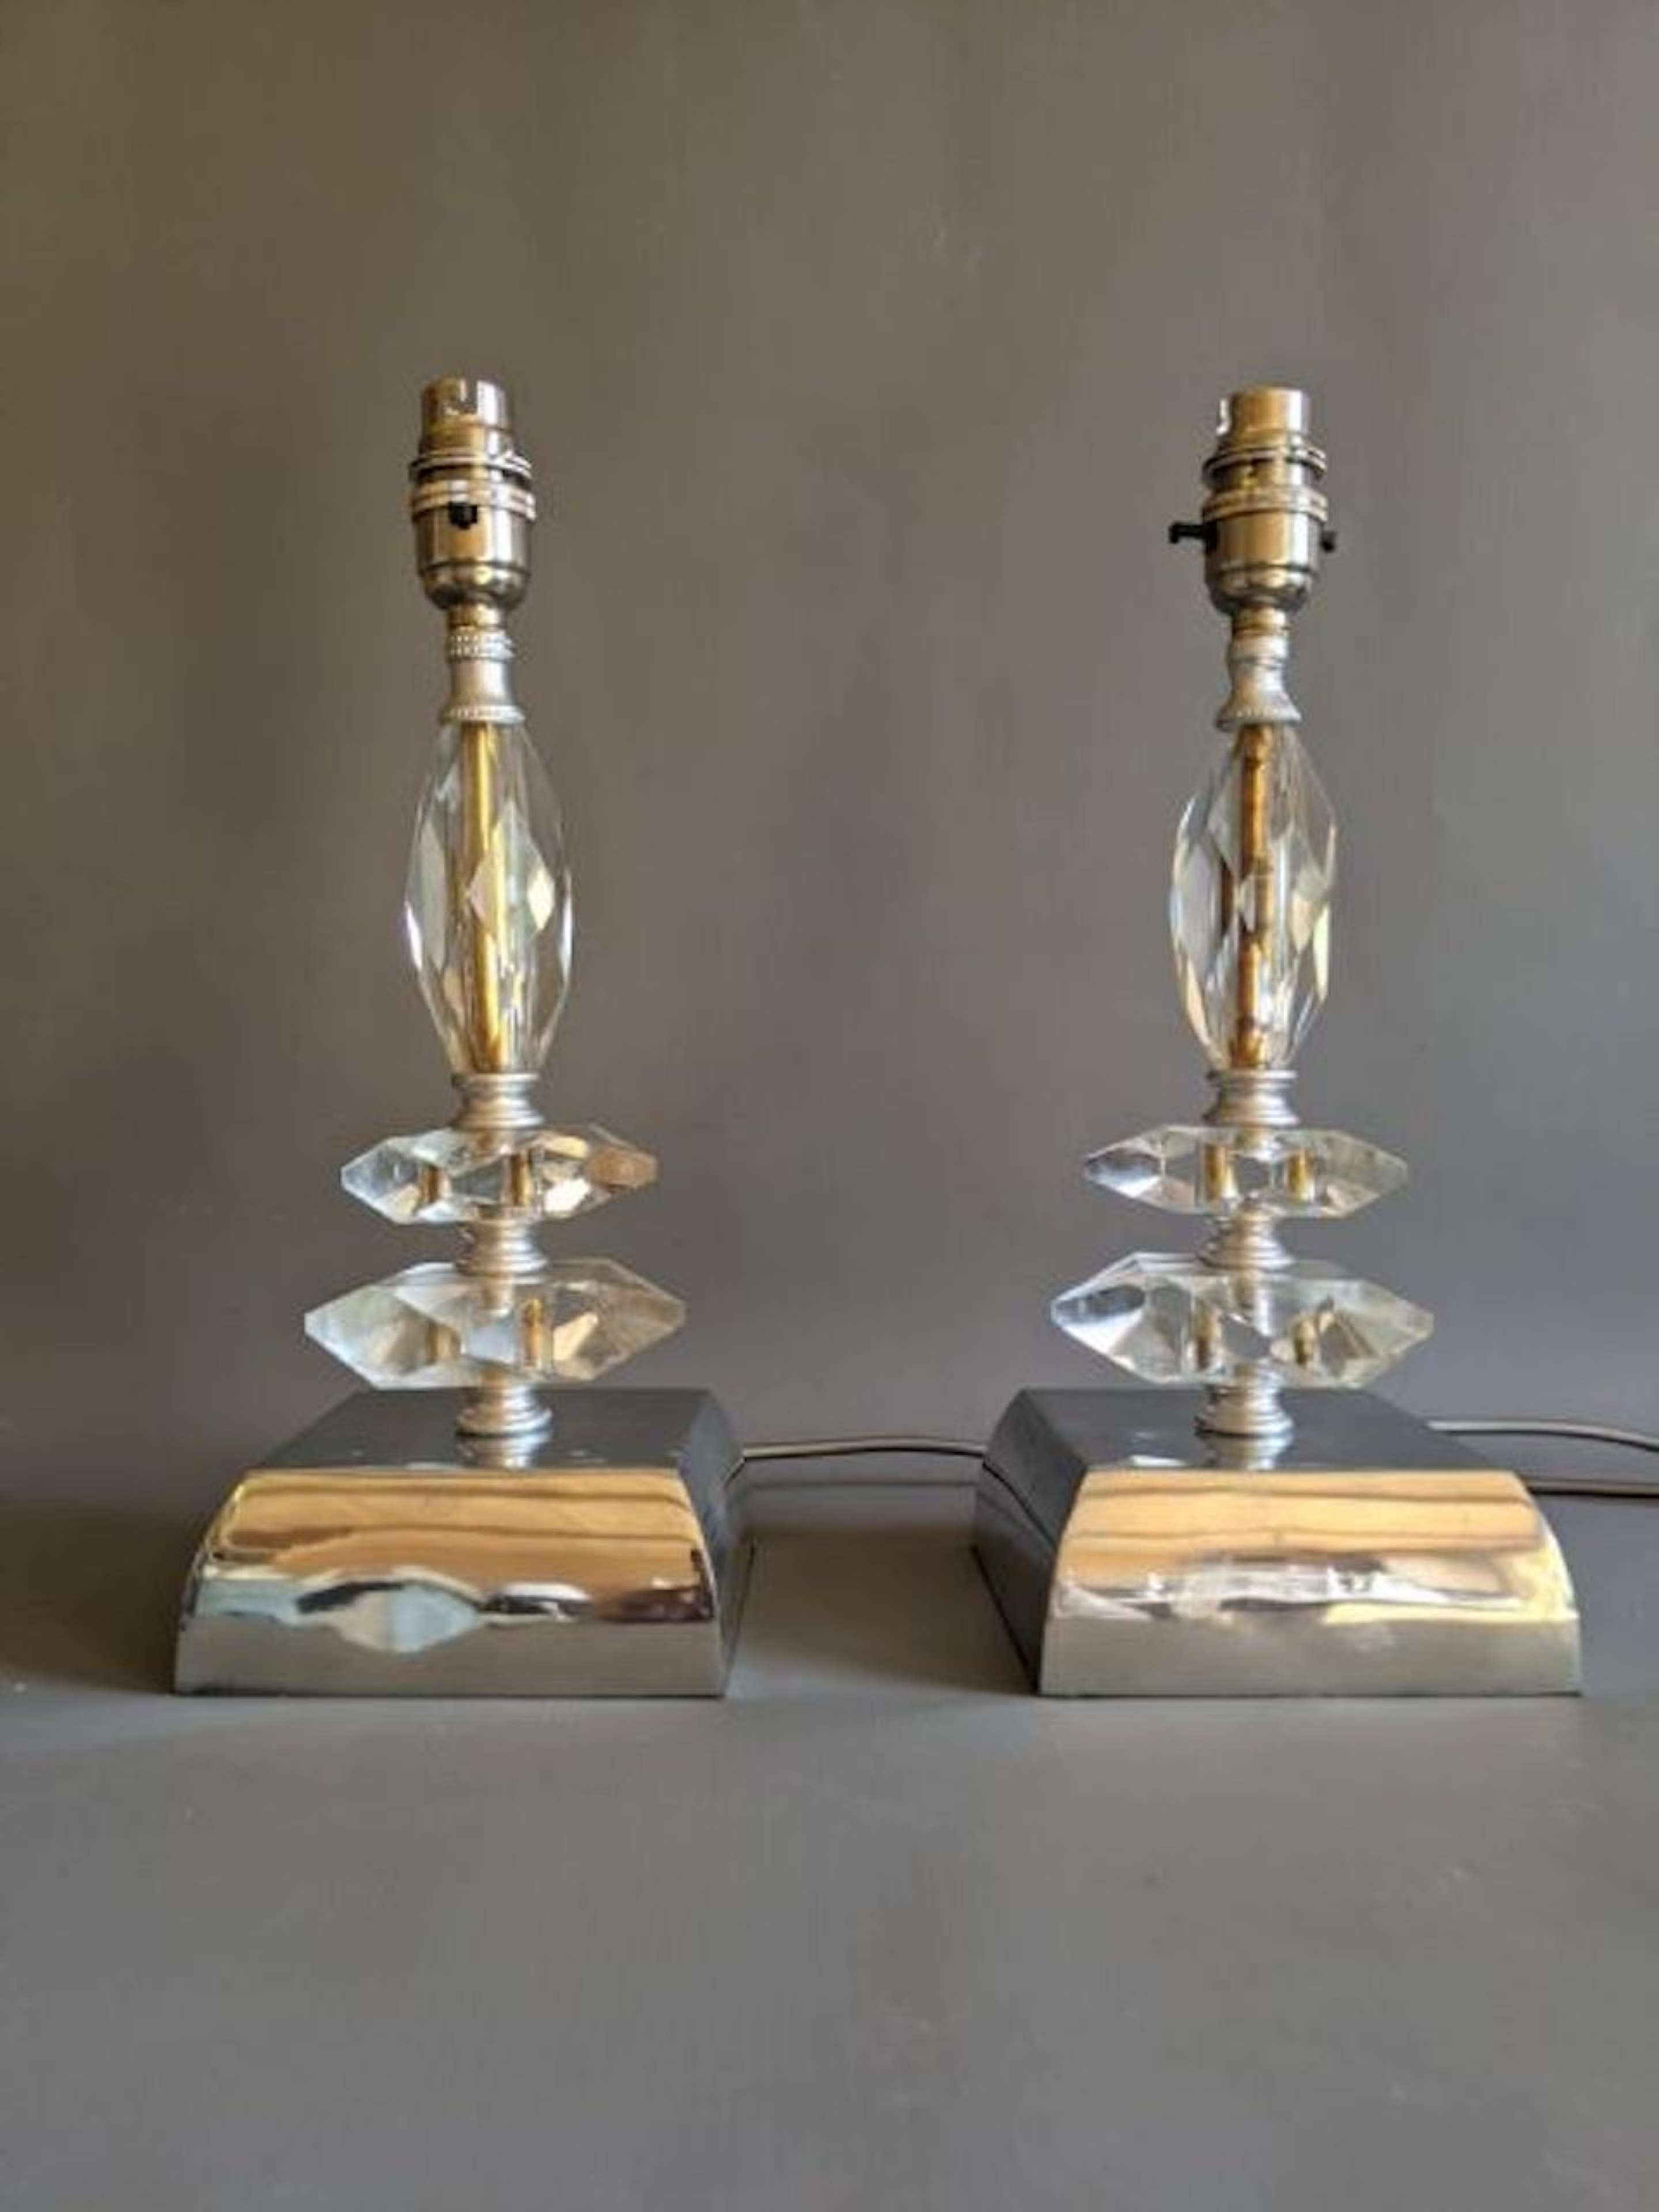 1920s Glass Lamps with Nickel Plated Base